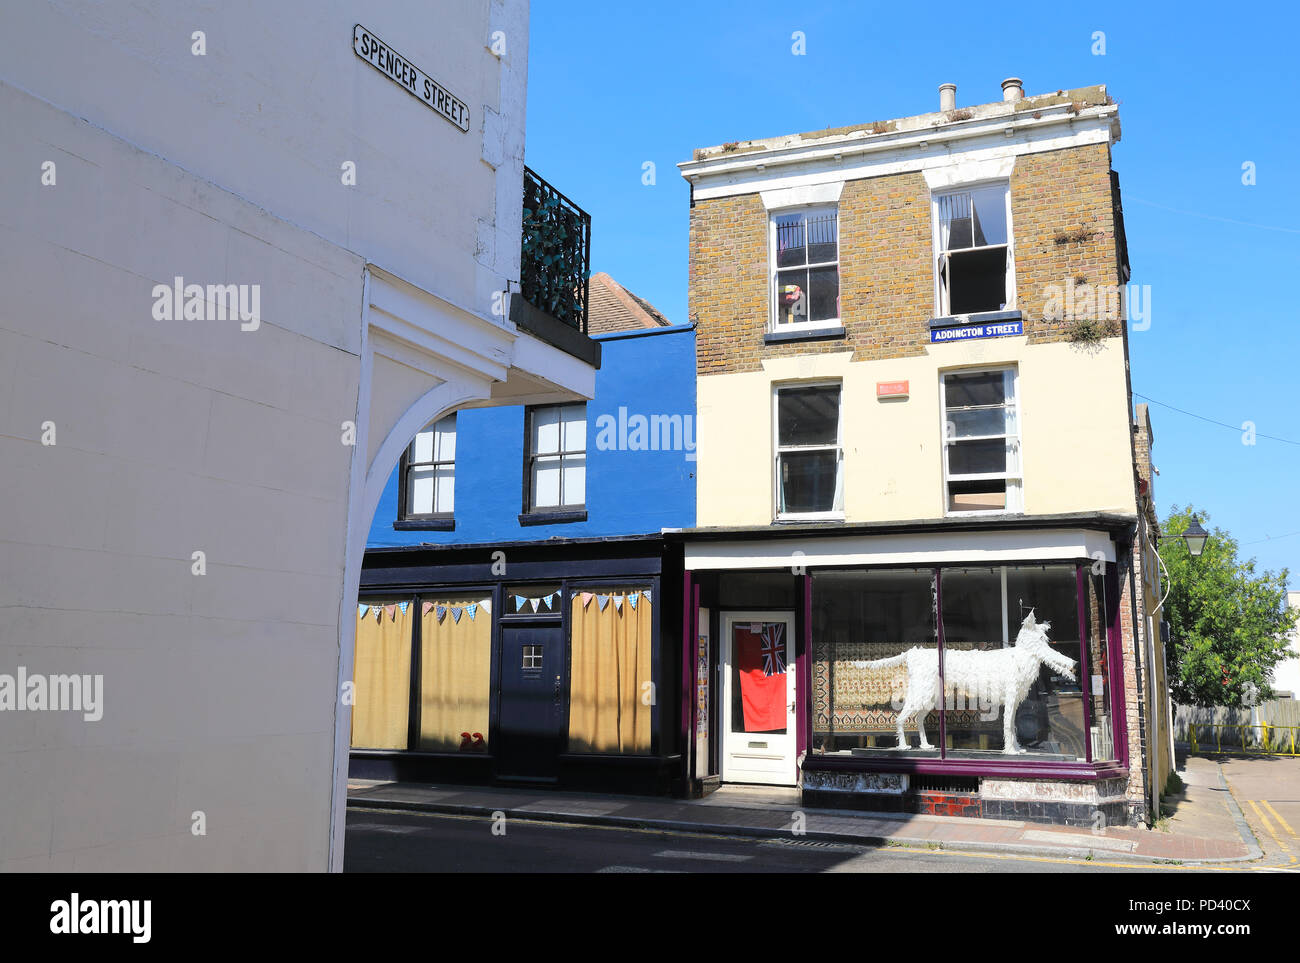 The historic buildings, and shops of arty Addington Street, in the West Cliff conservation area, in Ramsgate, on the Isle of Thanet, Kent, UK - Stock Image